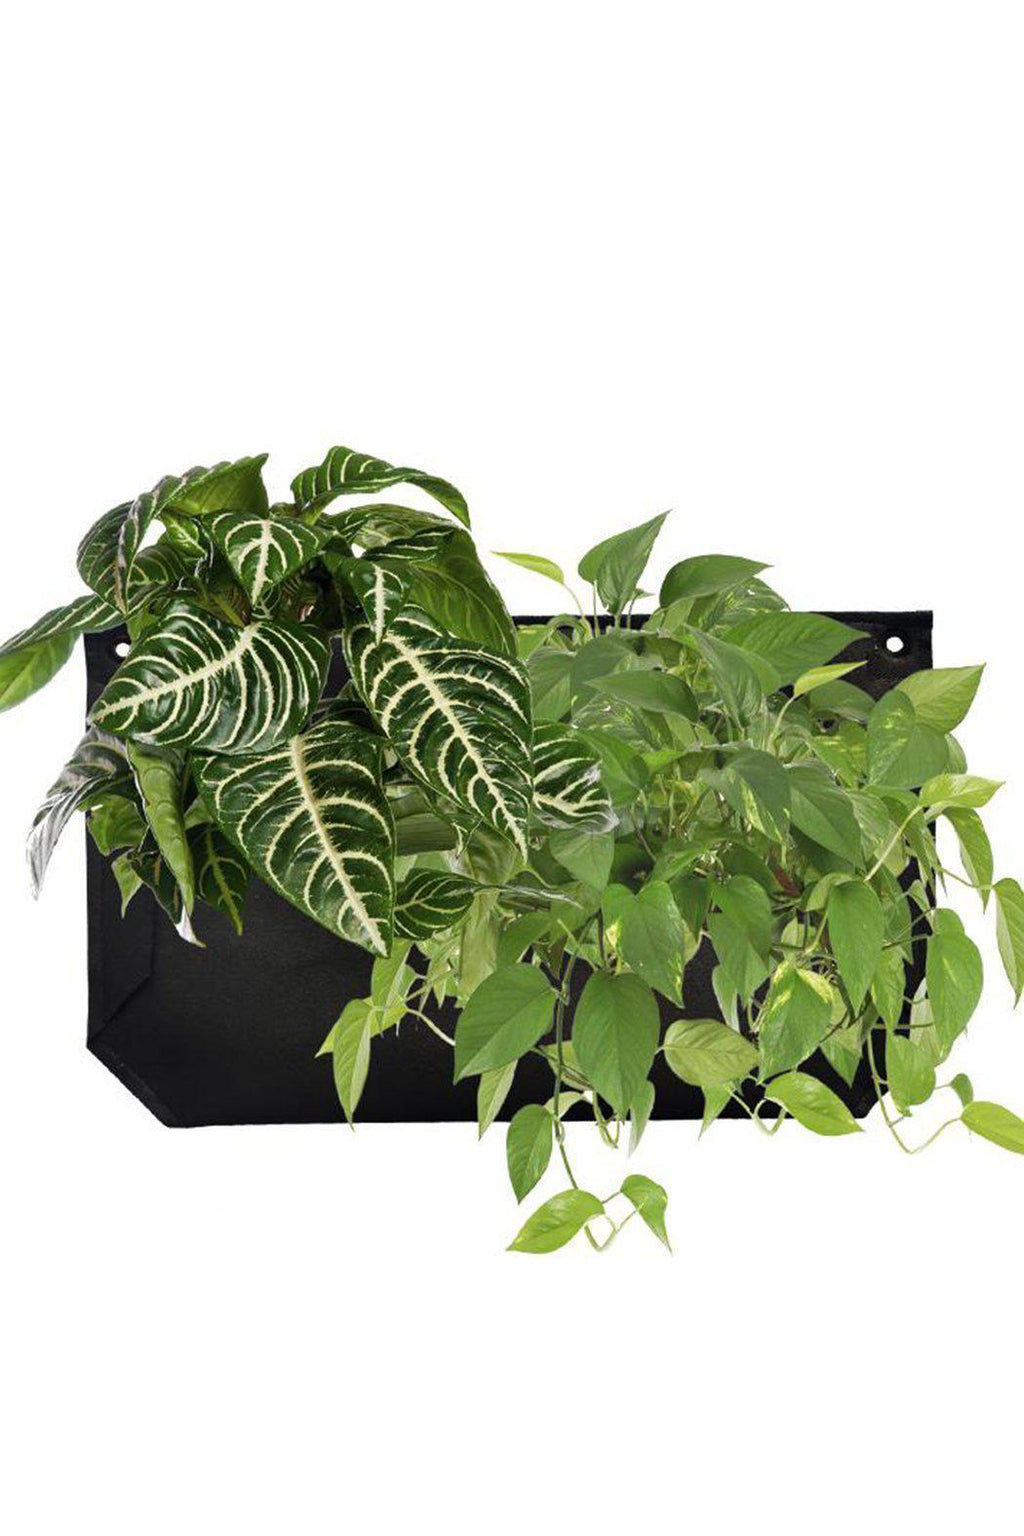 EcoVibe Style - Wally Pro Planter Pocket,